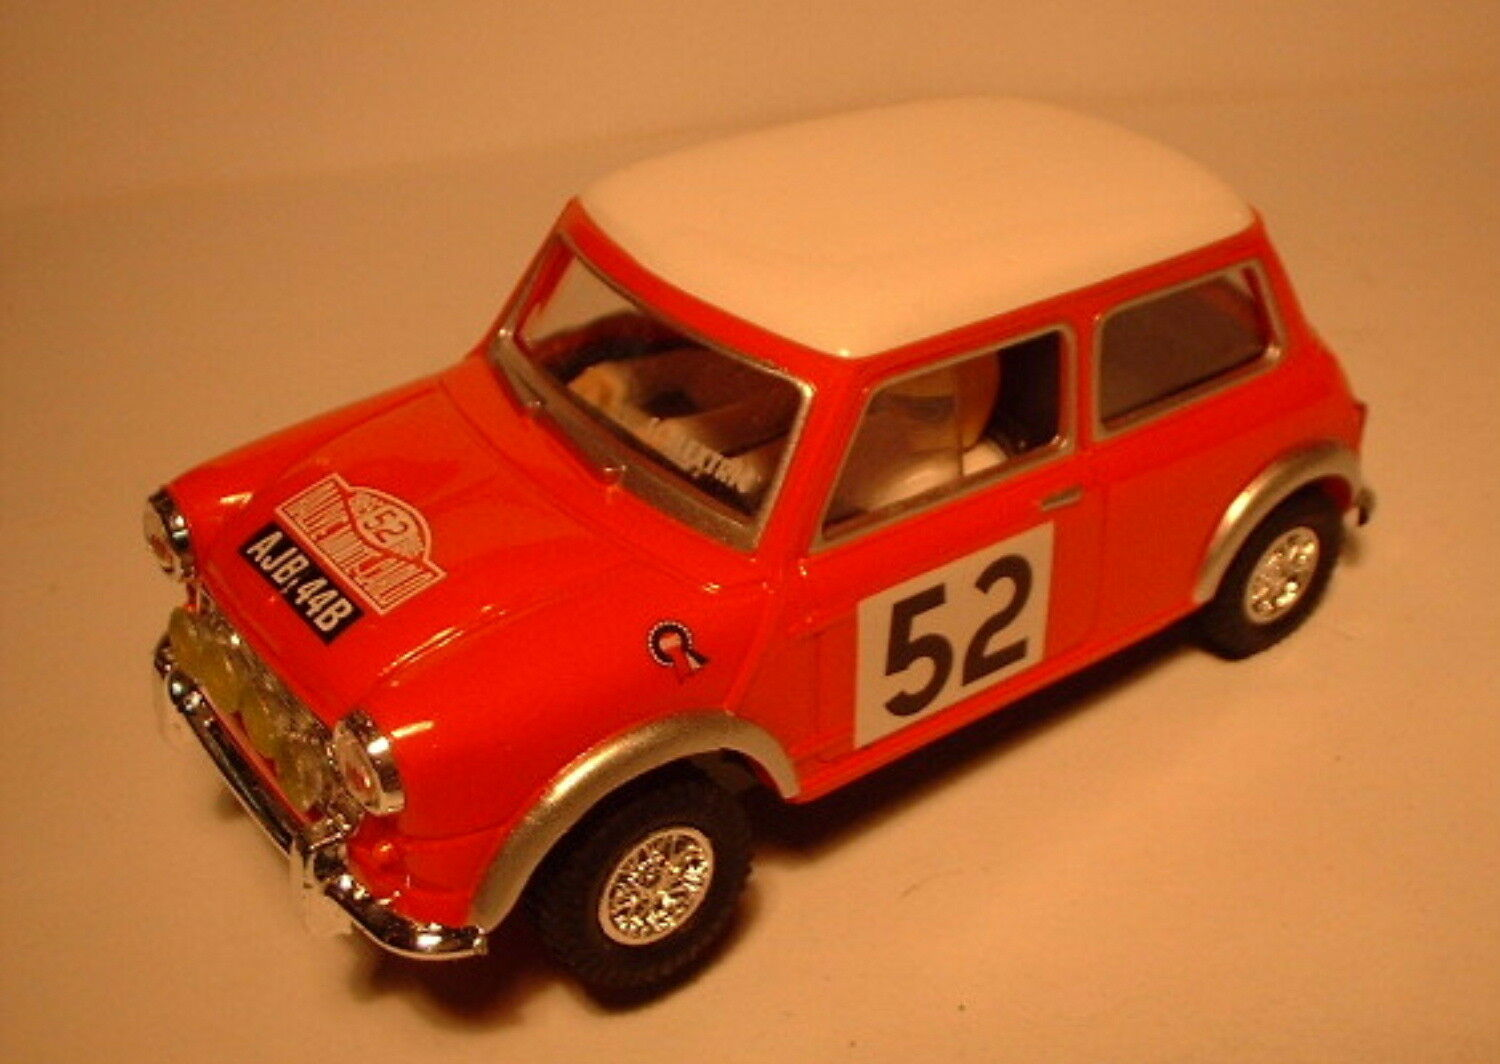 Qq SCX SPAIN PLANET CARS MYTHICAL MINI COOPER does not 52 RED LTED. ED